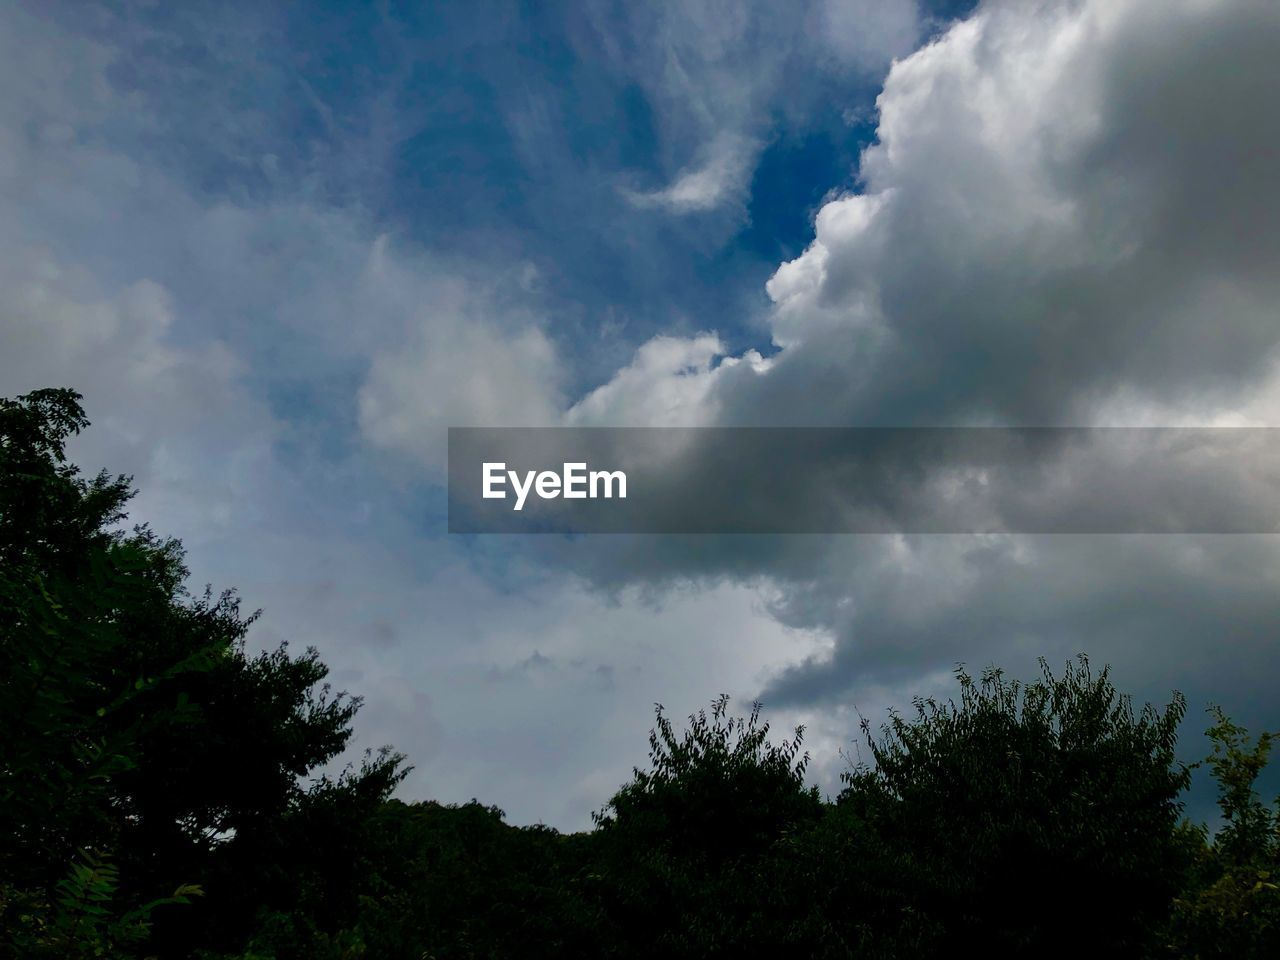 cloud - sky, sky, tree, beauty in nature, plant, low angle view, tranquility, tranquil scene, no people, scenics - nature, nature, day, outdoors, non-urban scene, growth, treetop, overcast, dramatic sky, idyllic, ominous